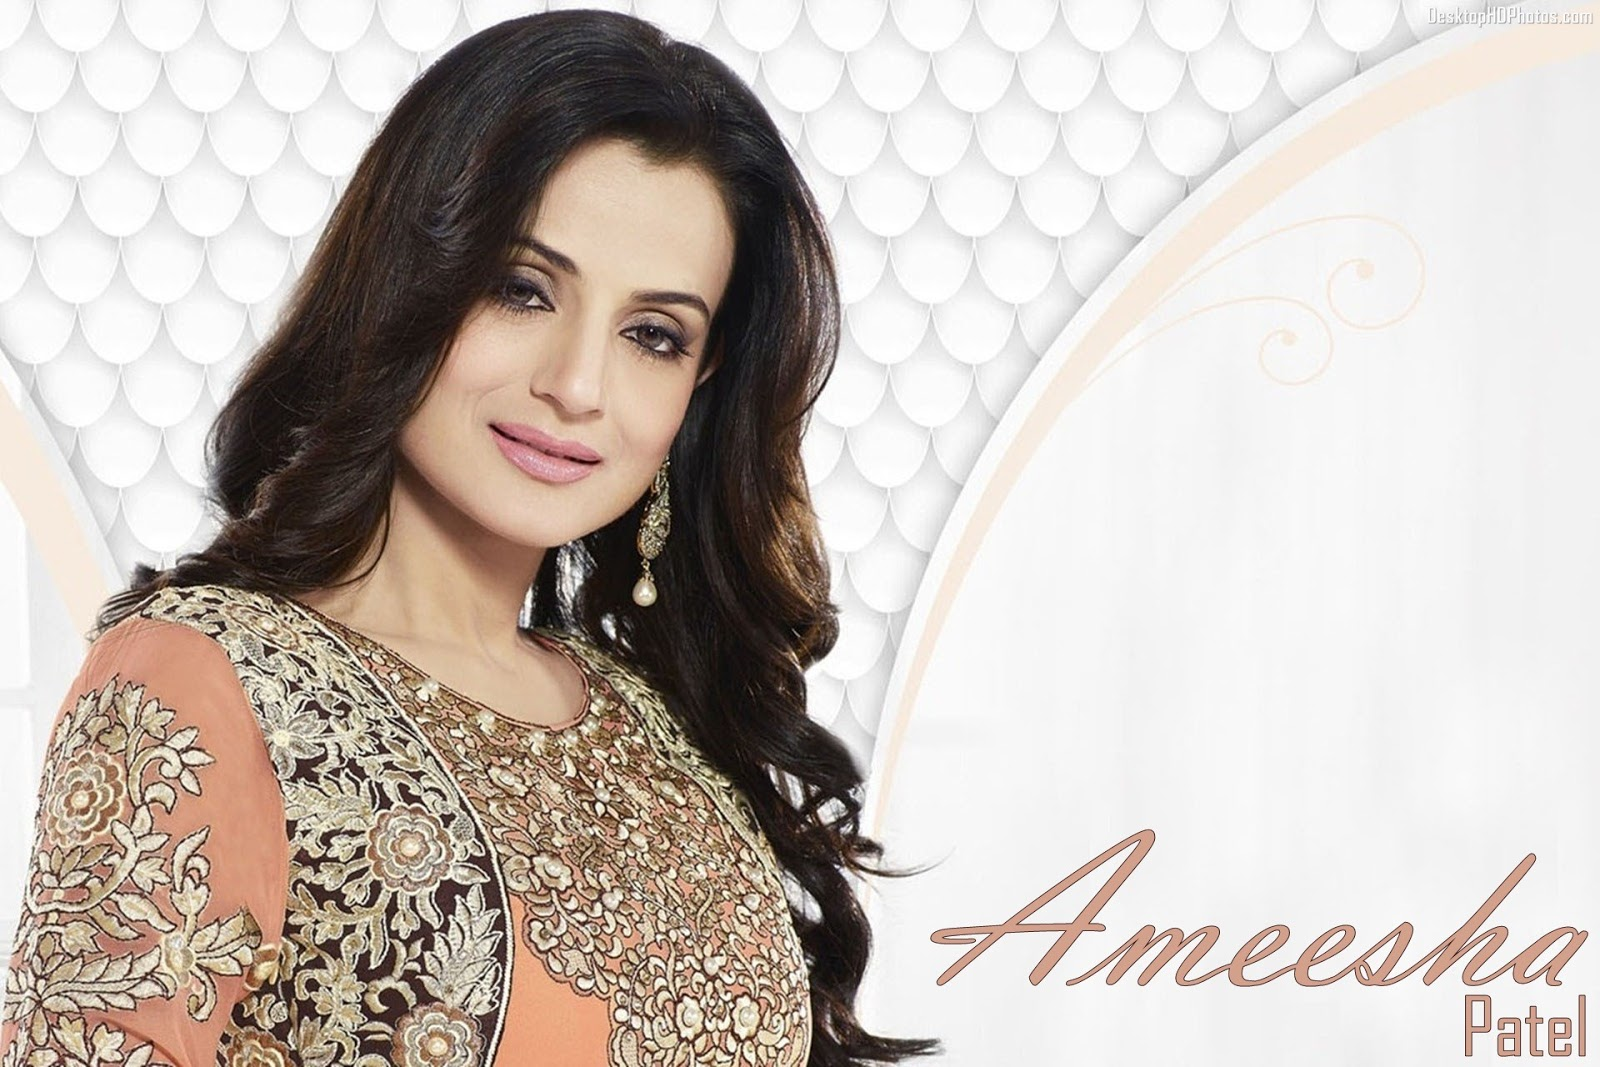 ameesha patel wallpapers - photo #27